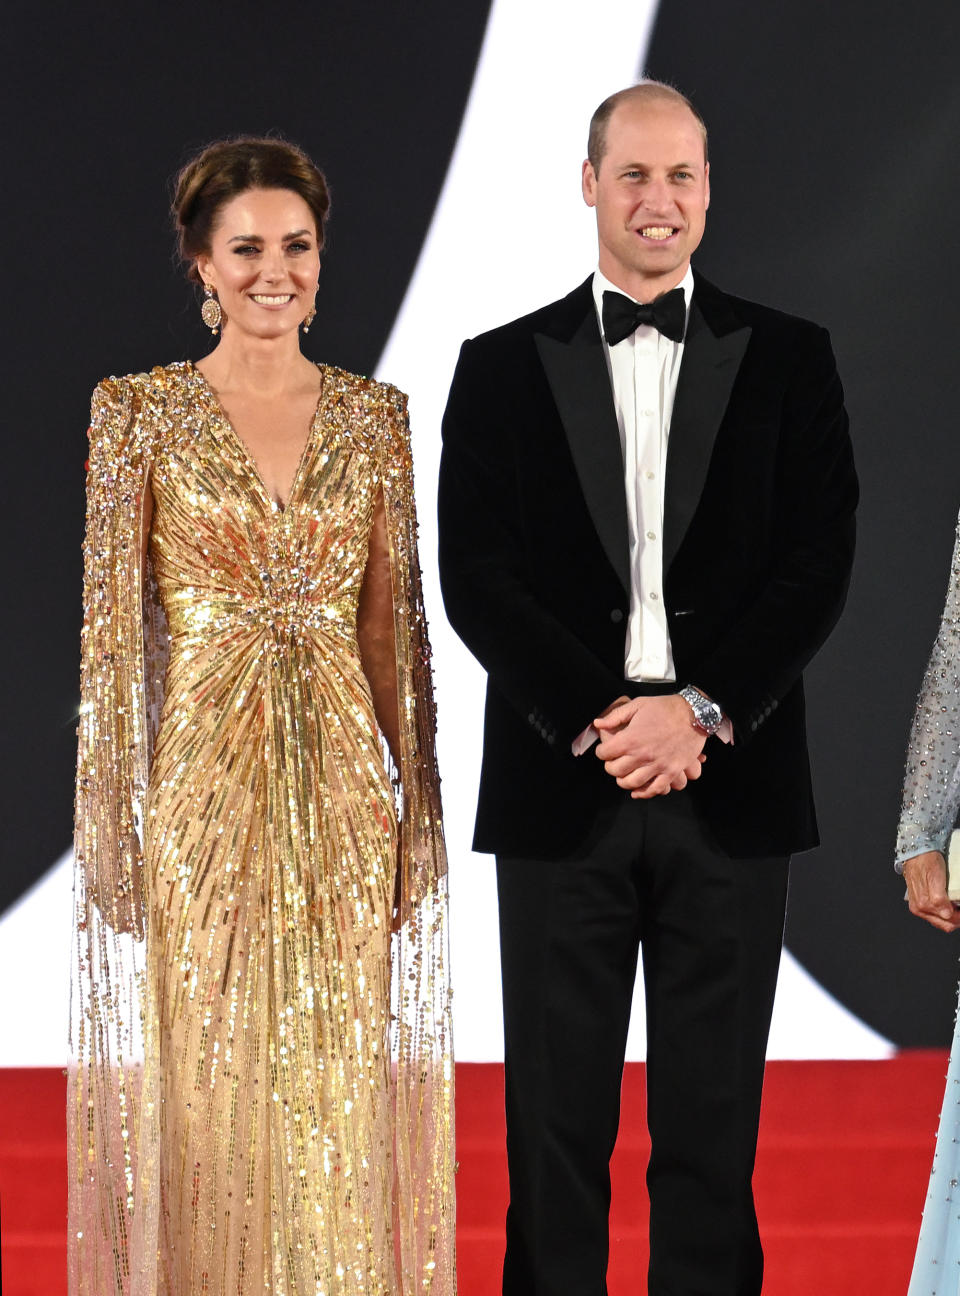 Kate Middleton and Prince William pose on the red carpet for James Bond